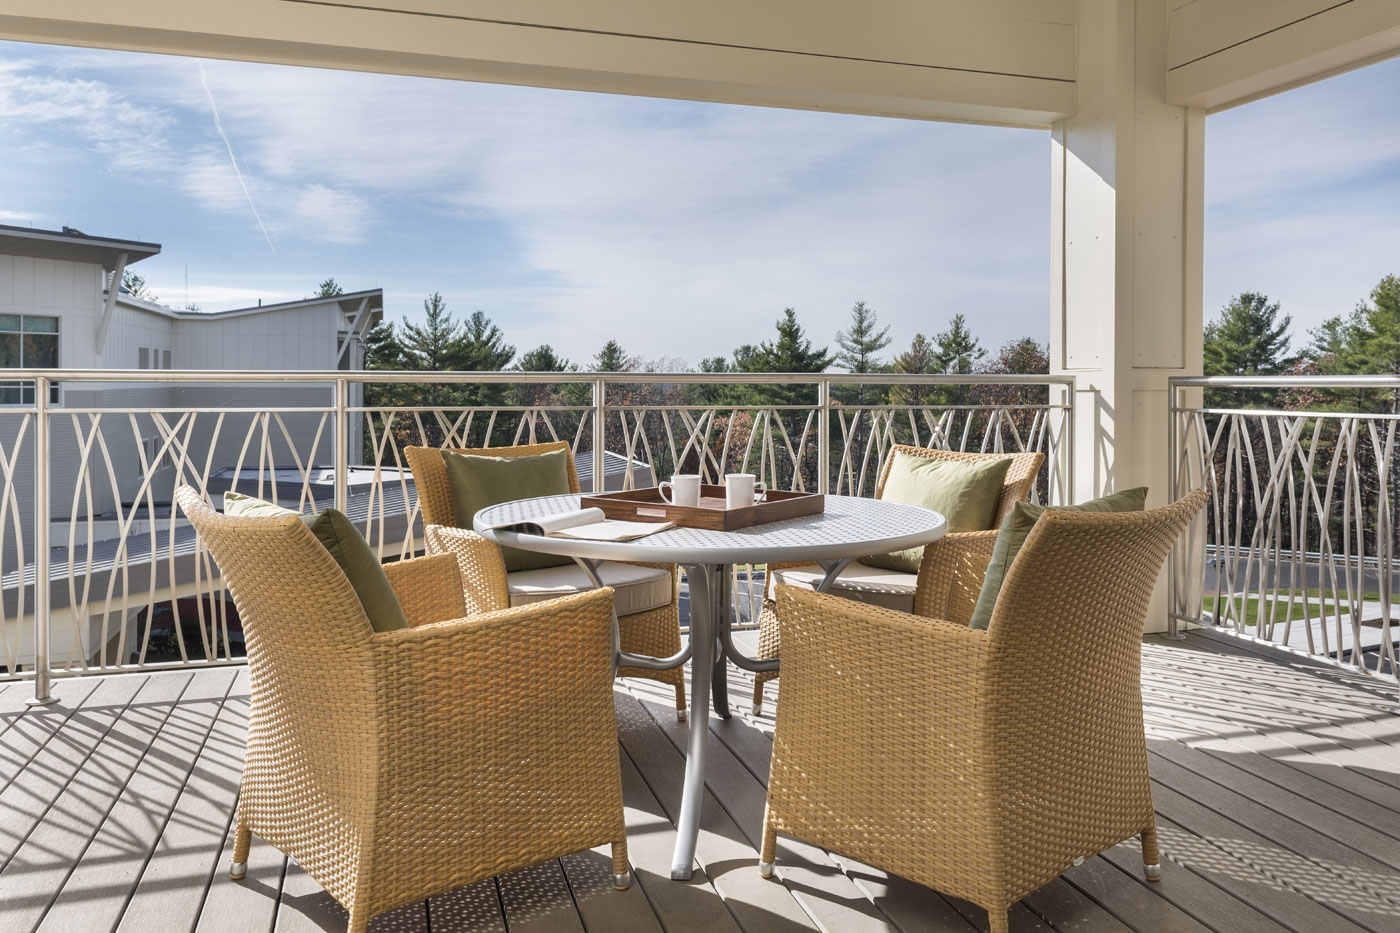 WDC's interior designers created this outdoor dining areas for seniors at this CCRC